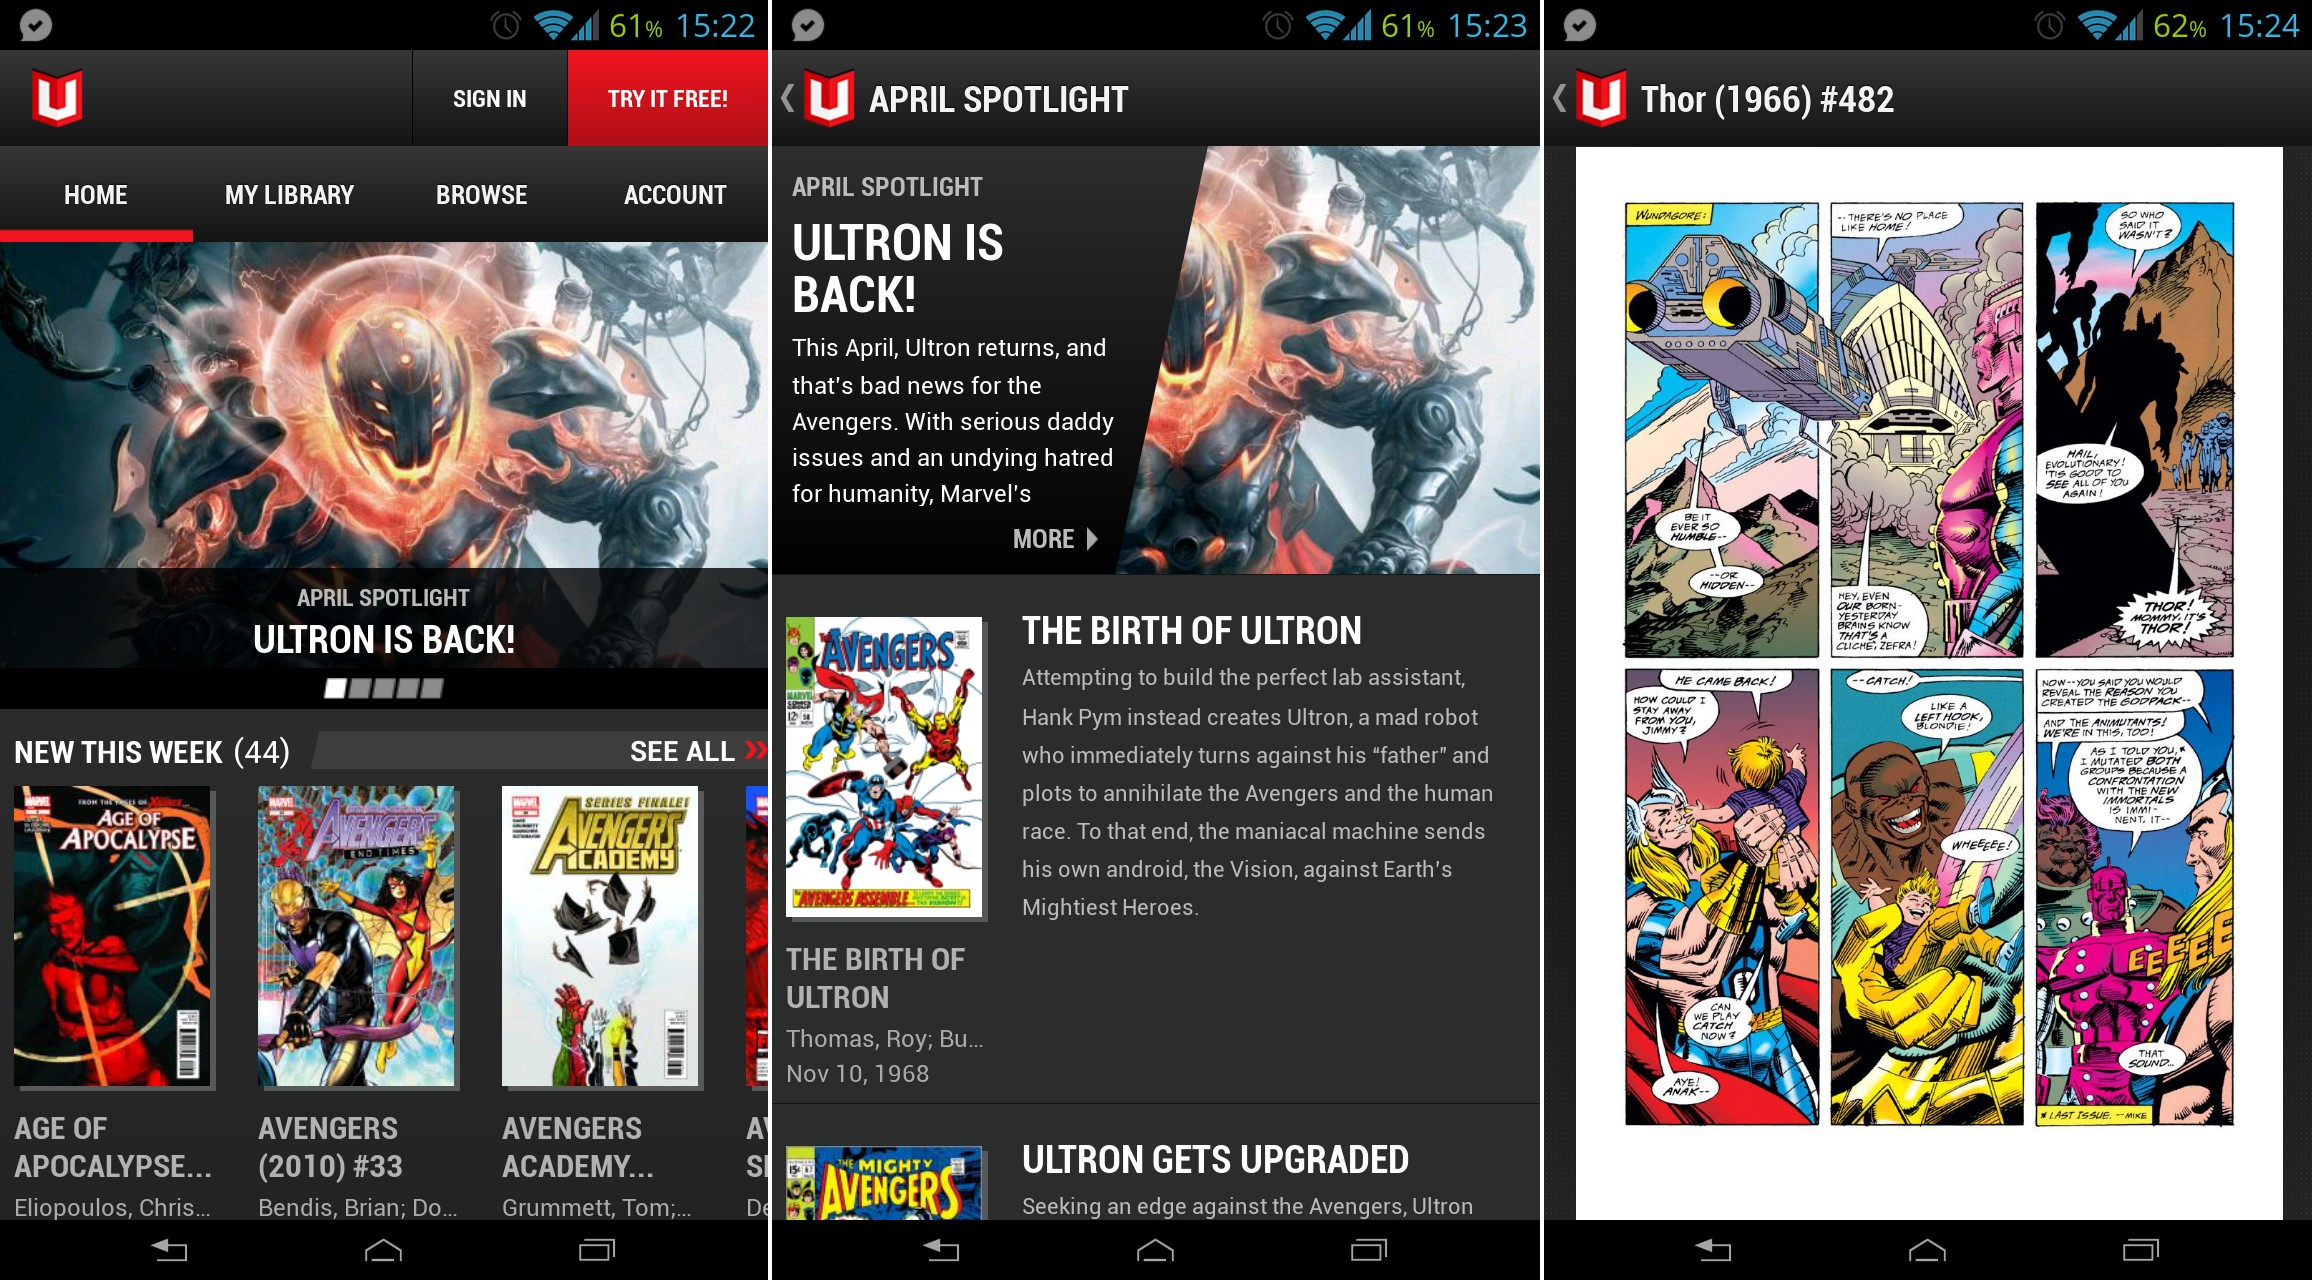 Marvel comics app for pc windows 10 download win 8 7 mac & android ios.